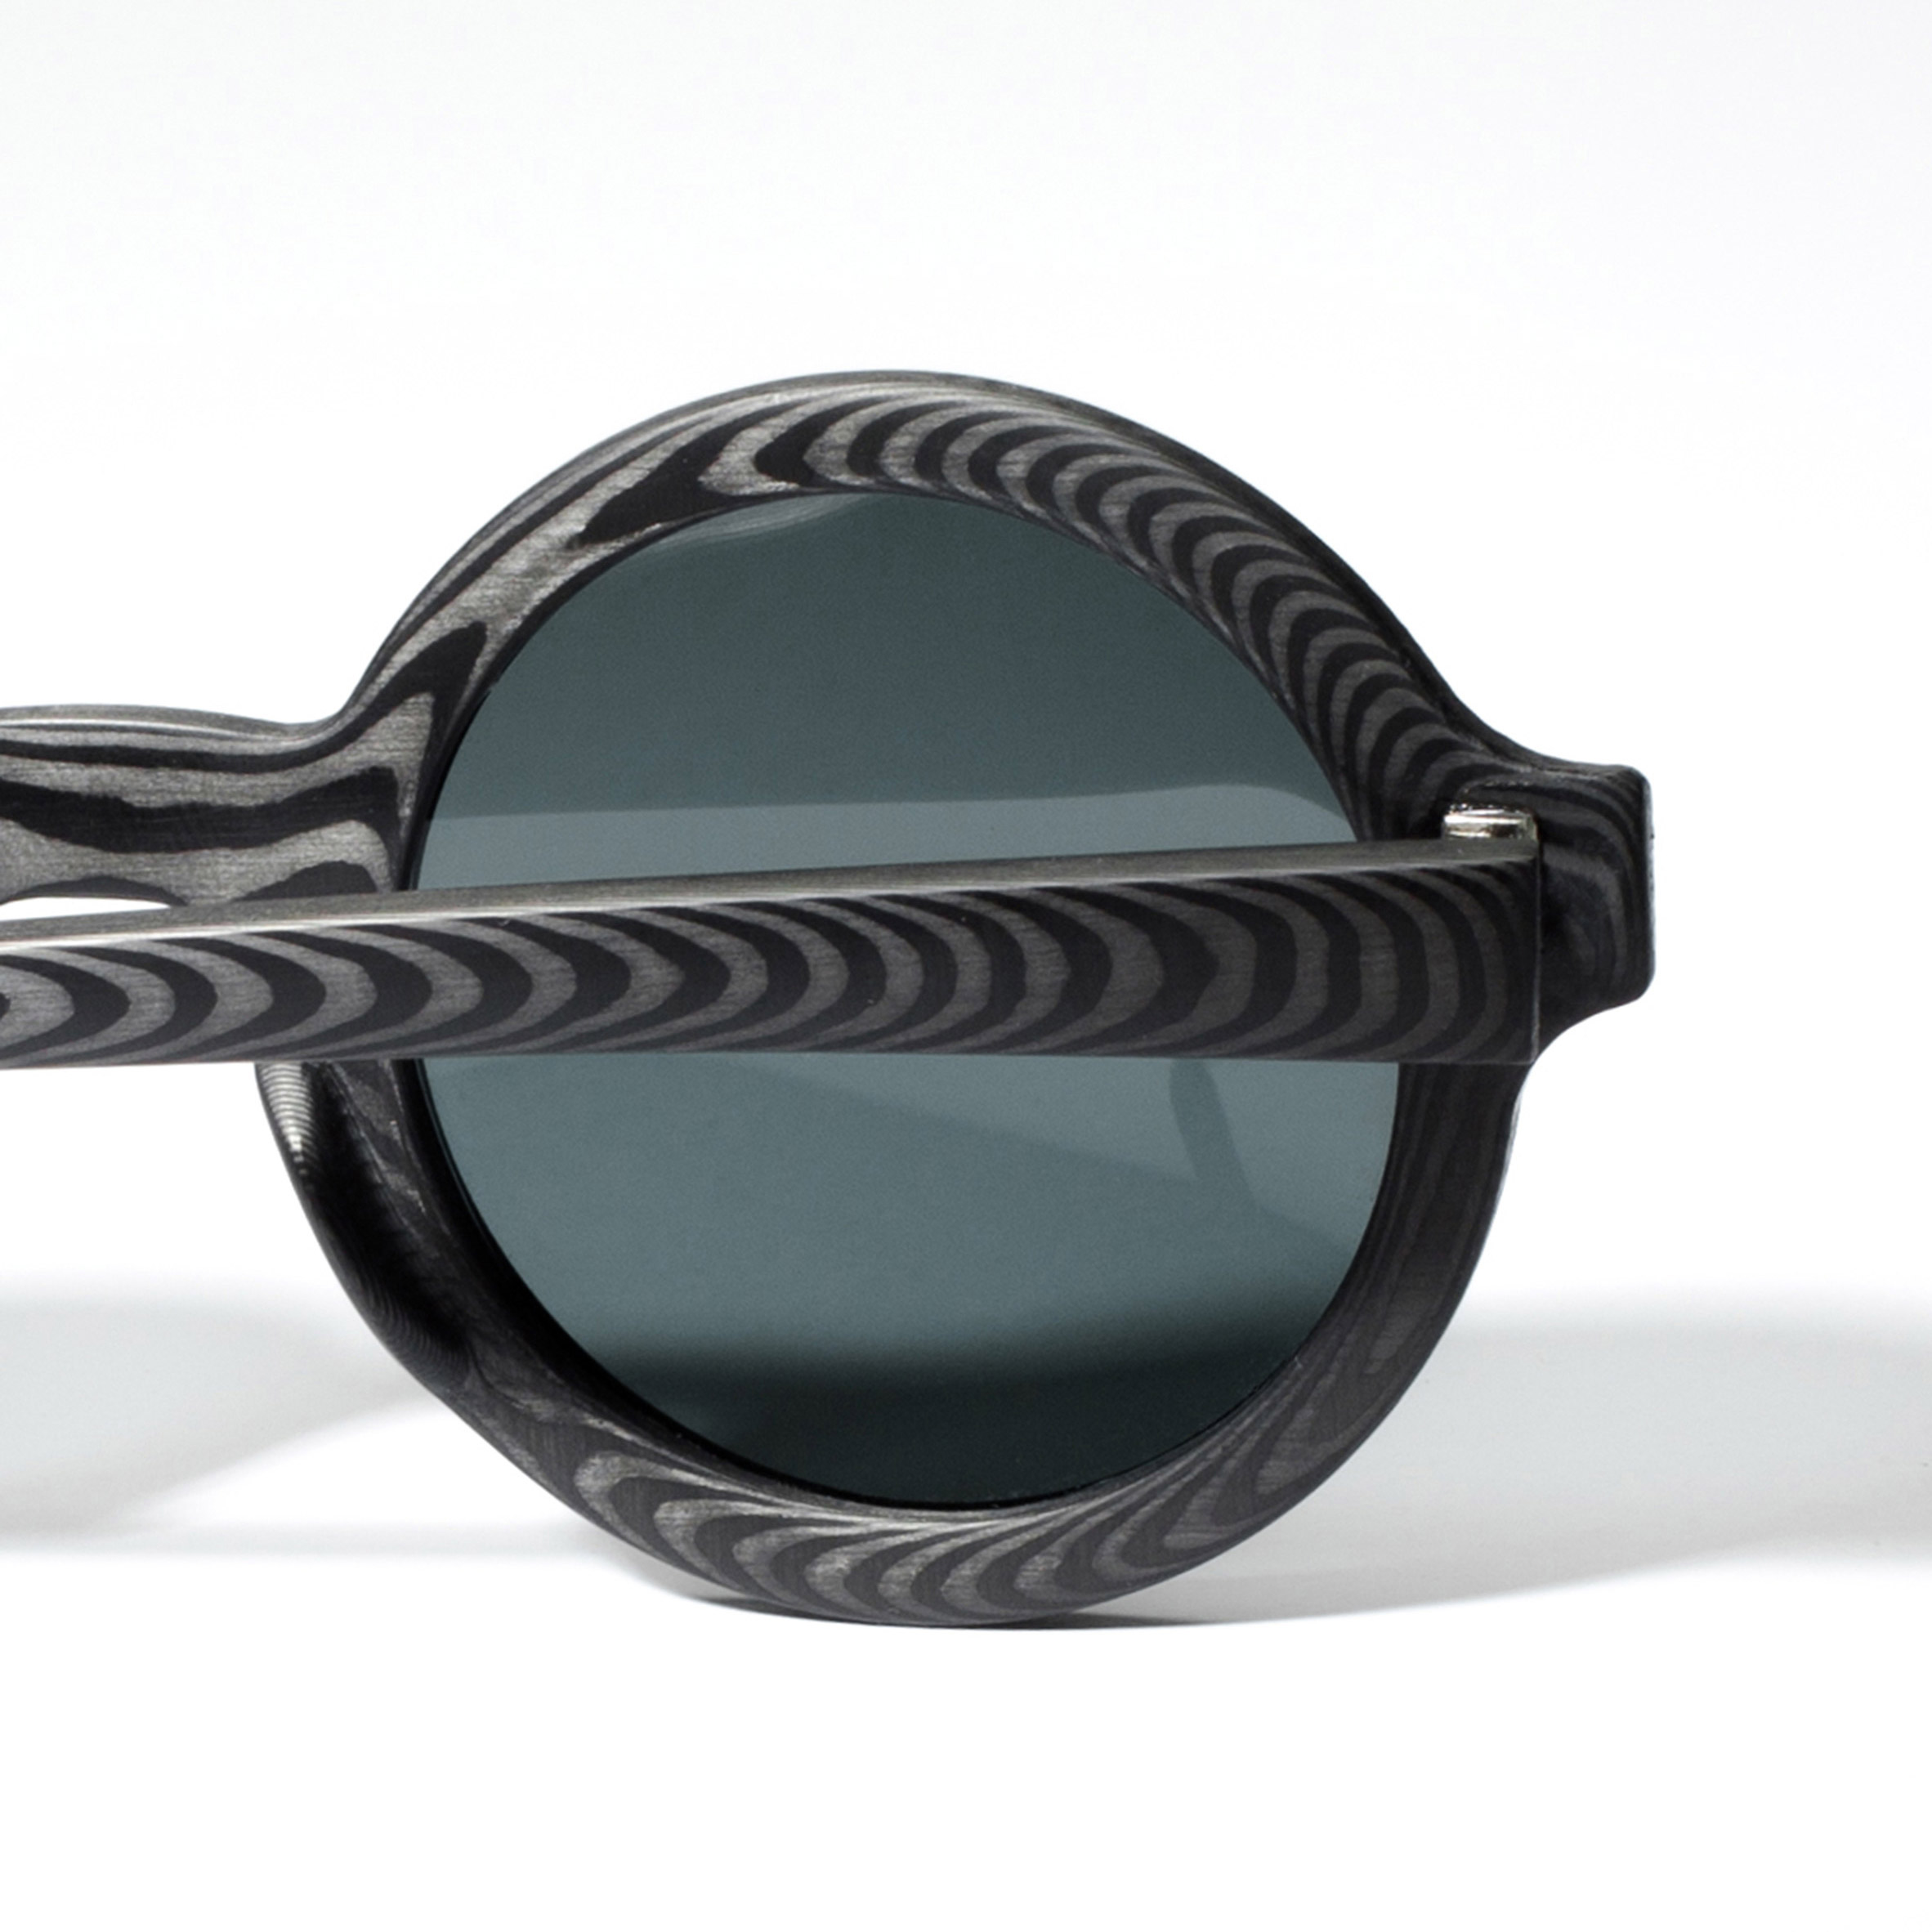 Eyewear product design | Dezeen